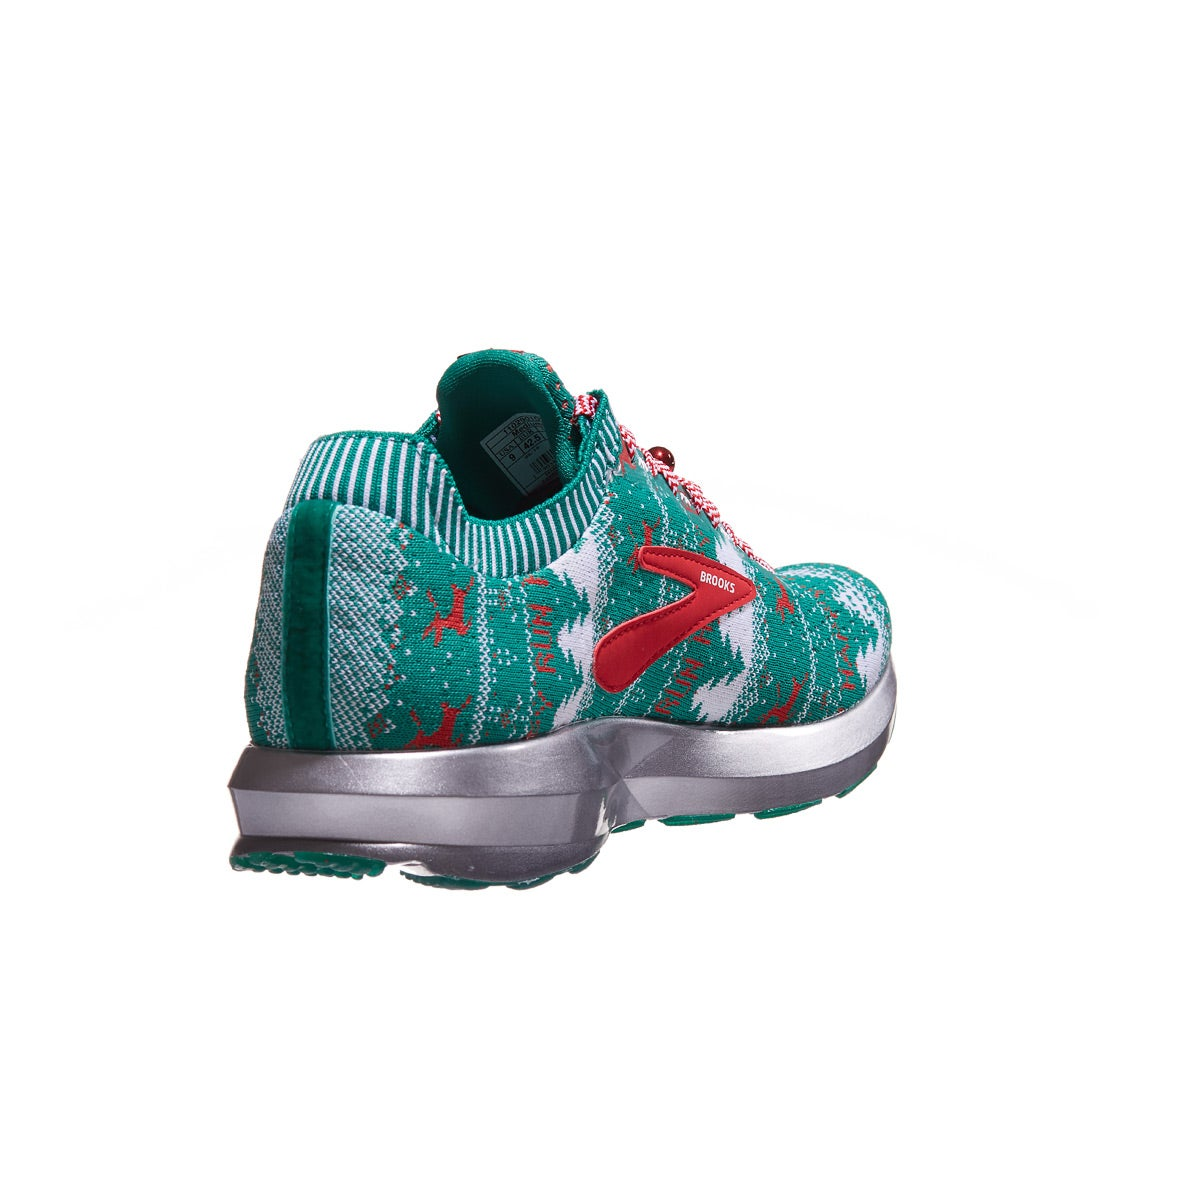 9693af39739 Brooks Levitate 2 Women s Shoes Ugly Holiday Sweater 360° View ...